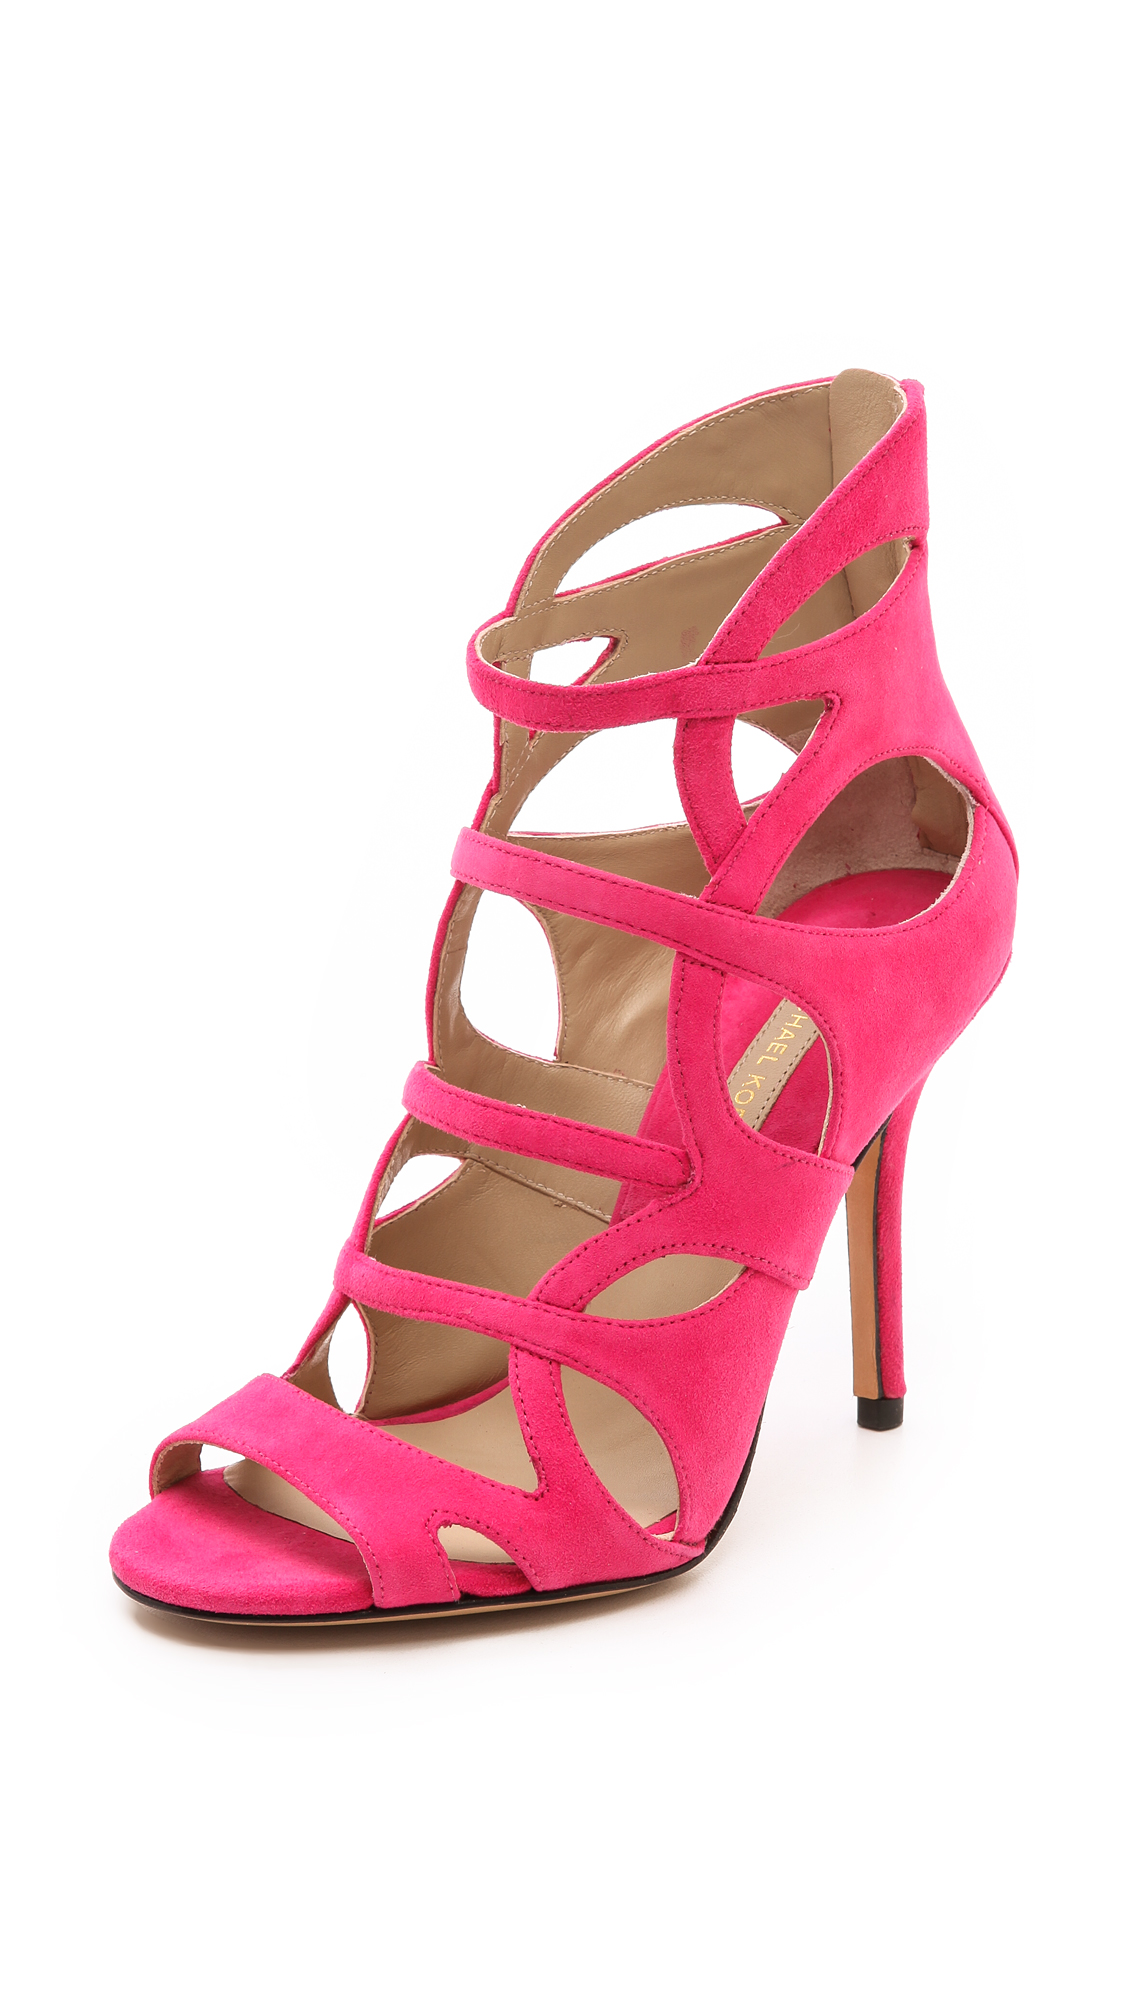 Michael Kors Casey Cutout Sandals Black In Rose Patent